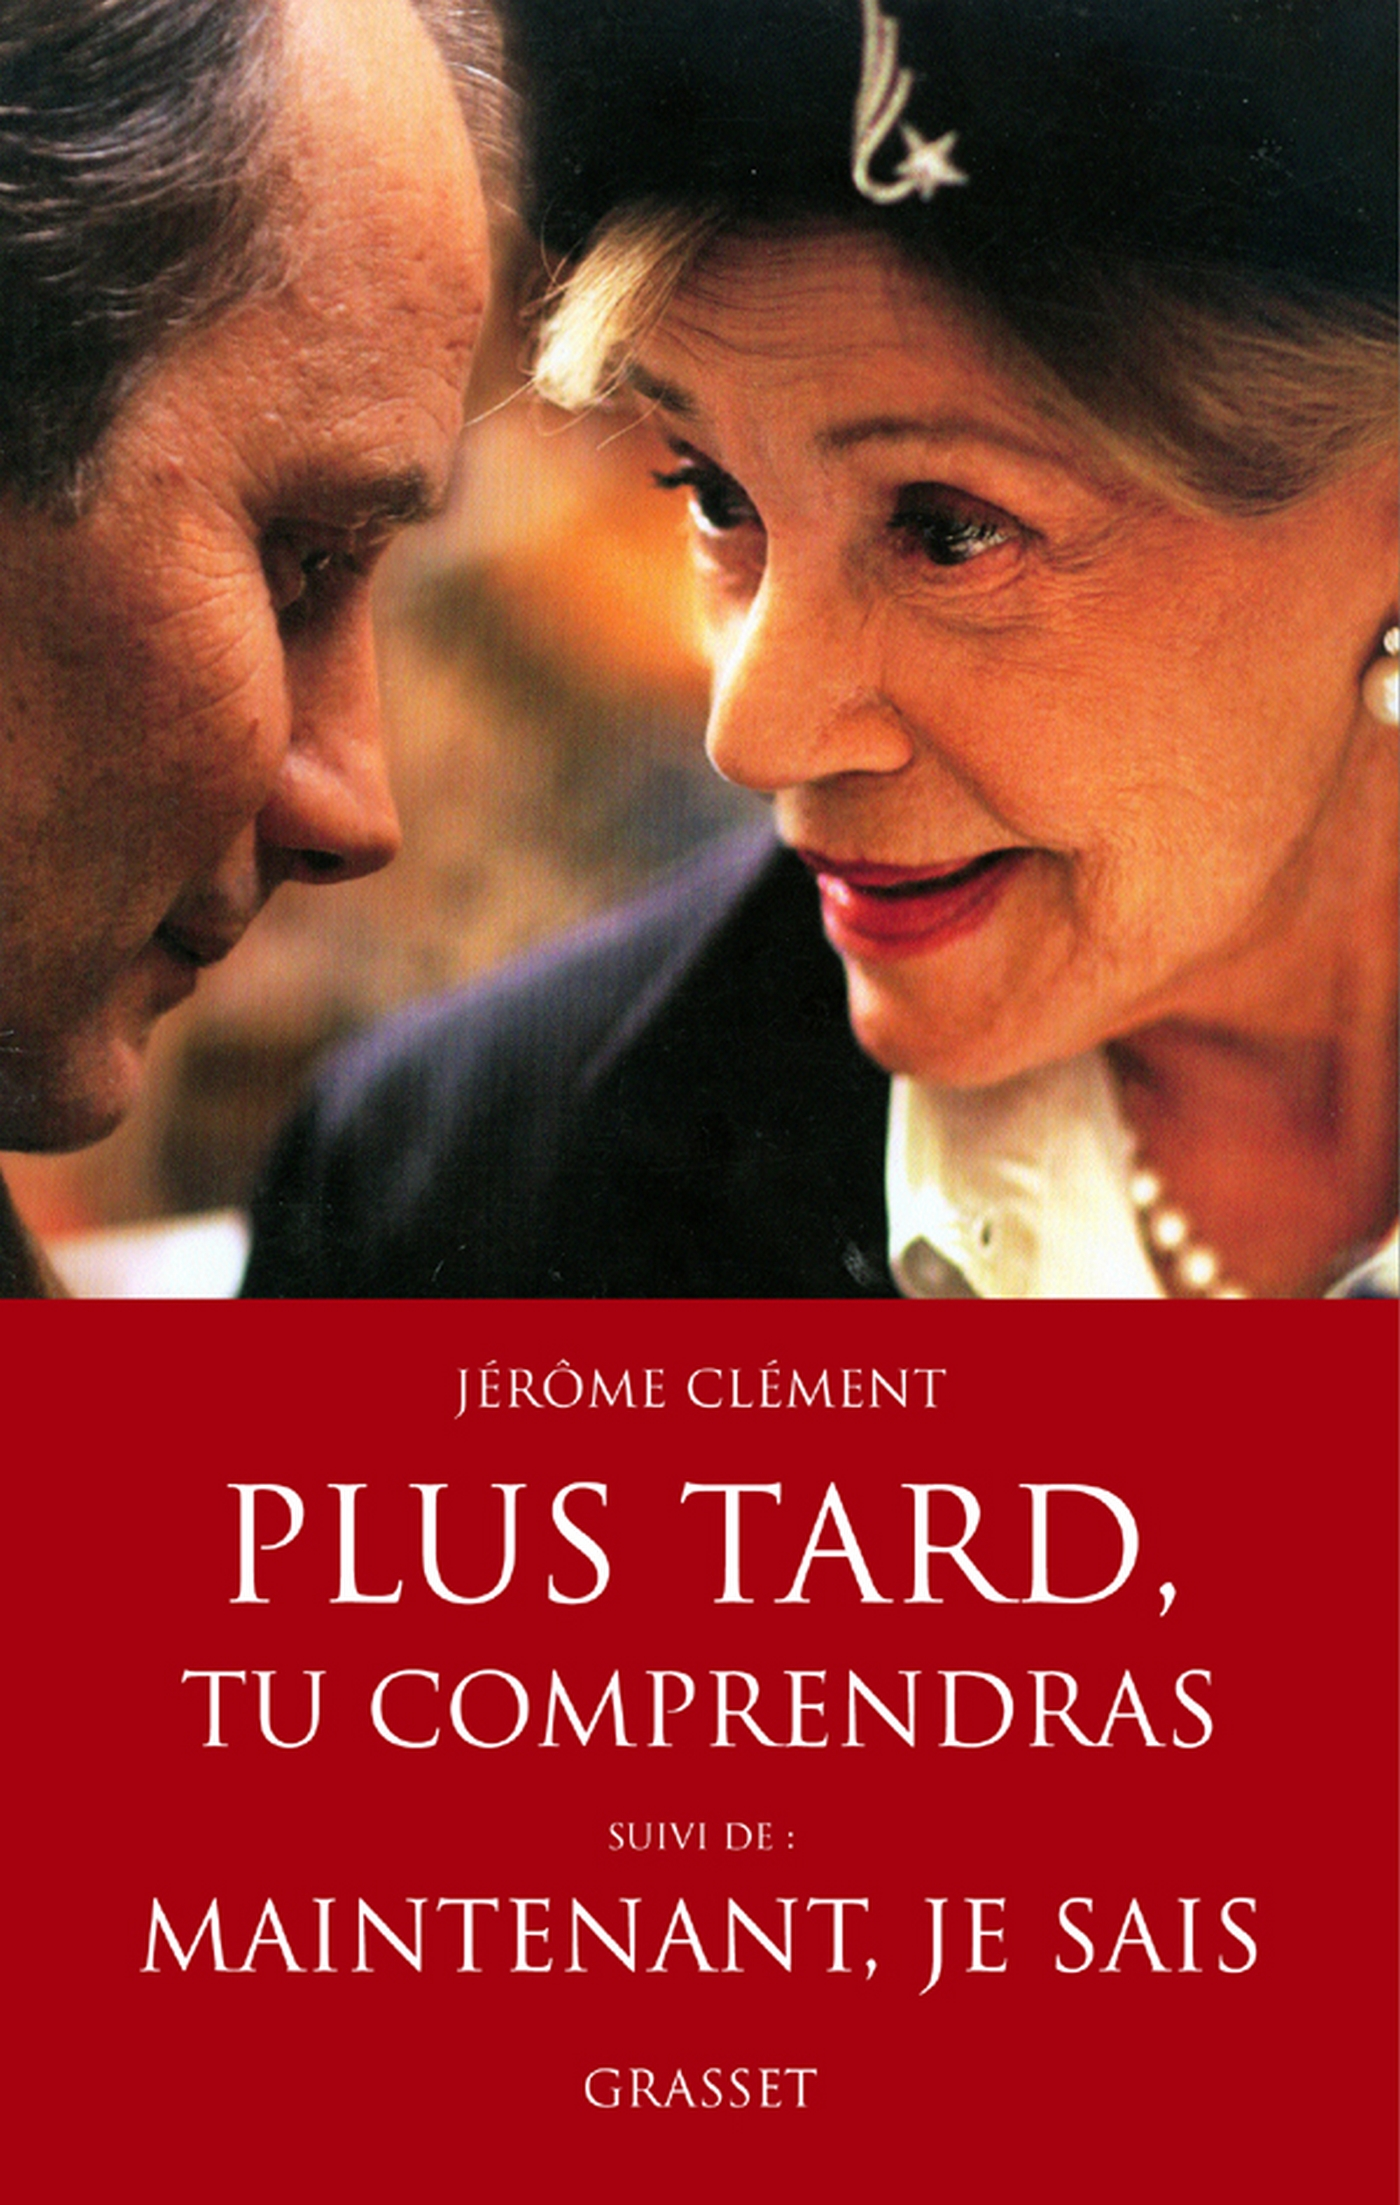 Plus tard, tu comprendras Le film